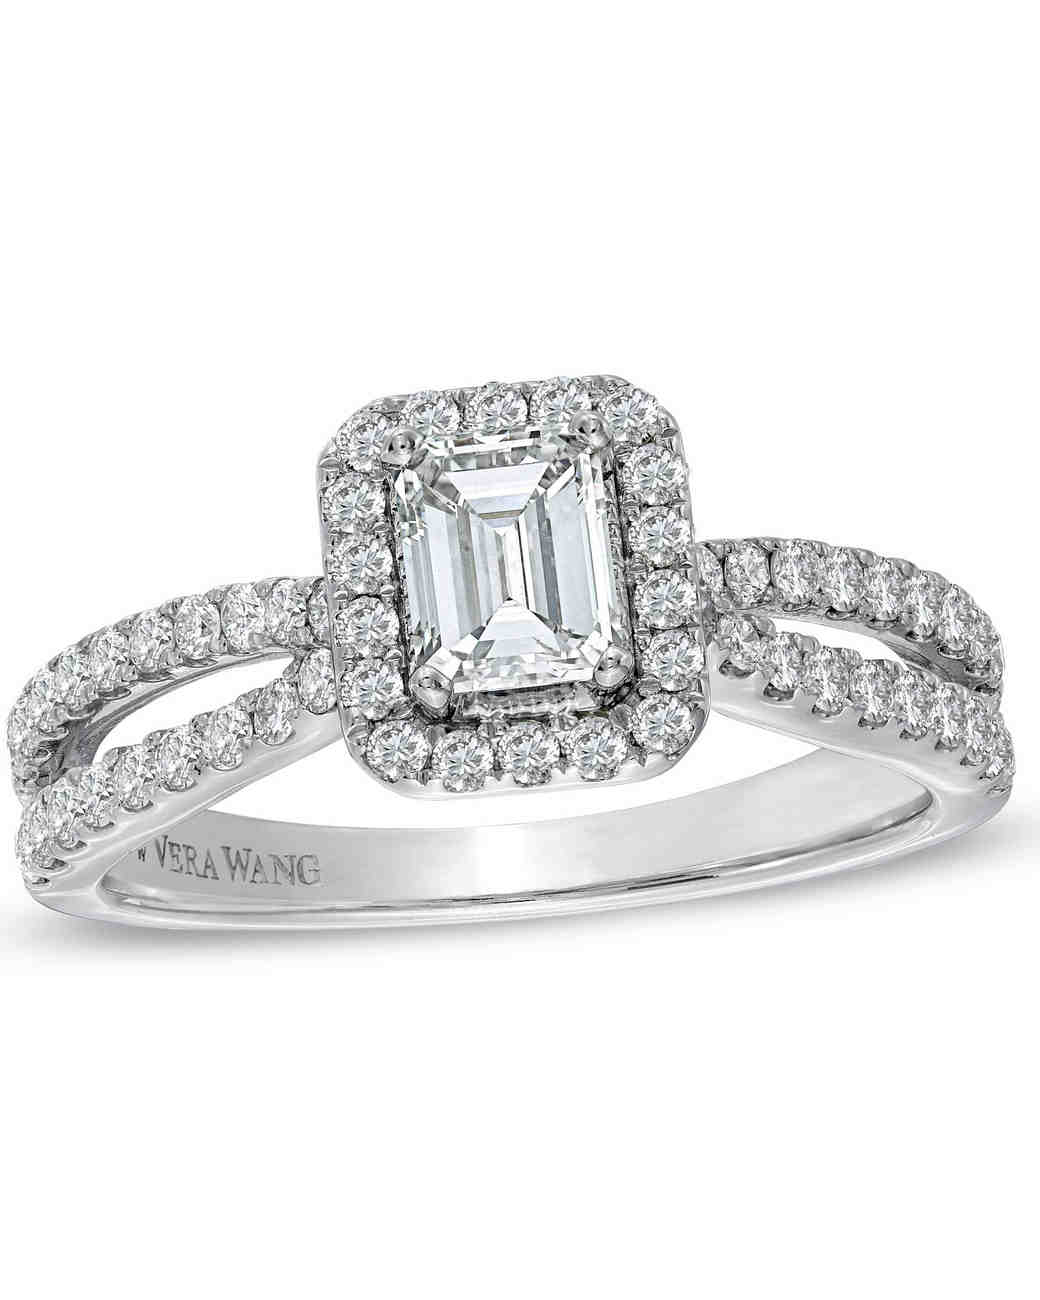 21 Best New Engagement Ring Designers To Know Now | Martha Stewart Weddings